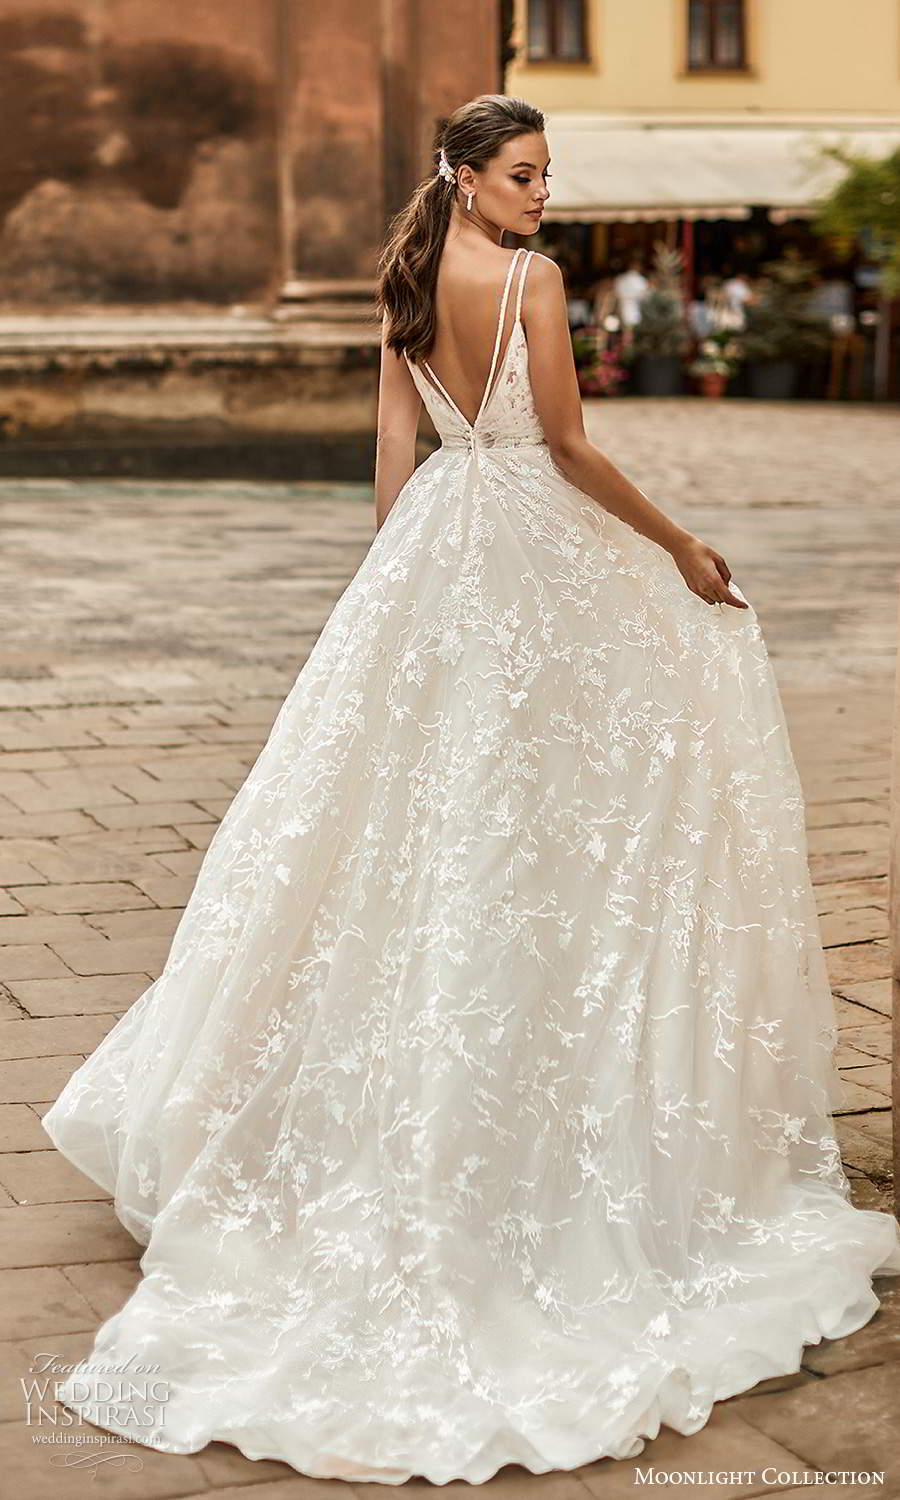 moonlight collection spring 2021 bridal sleeveless straps v neckline ruched bodice a line ball gown wedding dress chapel train (6) bv